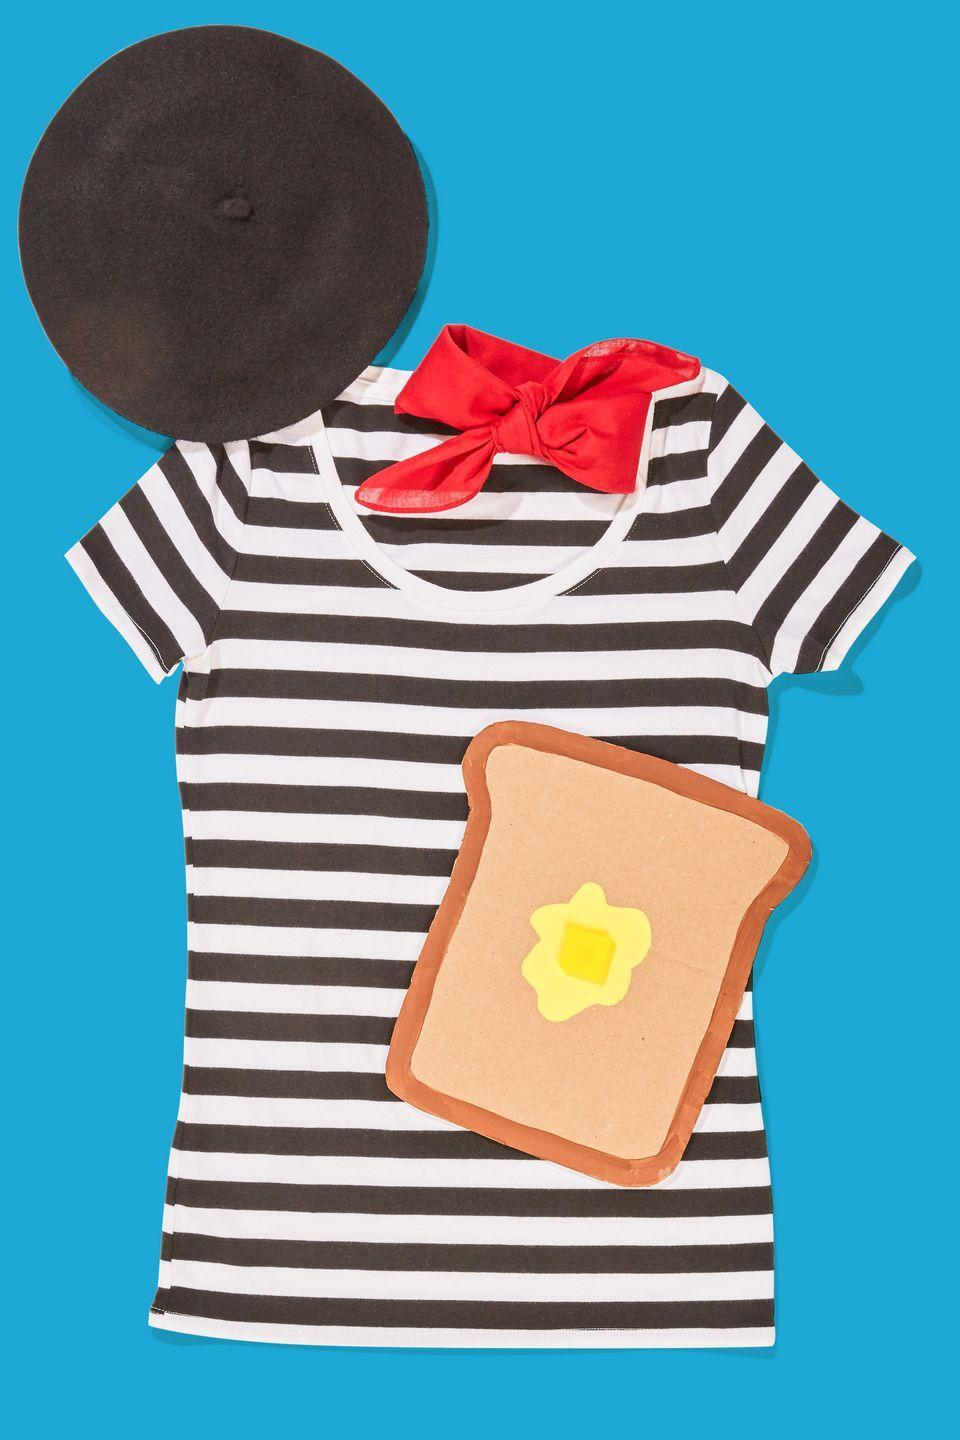 """<p>Round up a <span class=""""redactor-unlink"""">black beret</span>, a striped tee, a red scarf, and a piece of """"toast"""" crafted from cardboard. Punch two holes in the top of the bread and tie string to them to wear around your neck. </p><p><strong><a class=""""link rapid-noclick-resp"""" href=""""https://www.amazon.com/Chapeau-Tribe-Classic-Stretchable-French/dp/B07TW8NCX8?tag=syn-yahoo-20&ascsubtag=%5Bartid%7C10070.g.490%5Bsrc%7Cyahoo-us"""" rel=""""nofollow noopener"""" target=""""_blank"""" data-ylk=""""slk:SHOP BLACK BERETS"""">SHOP BLACK BERETS</a></strong> </p>"""